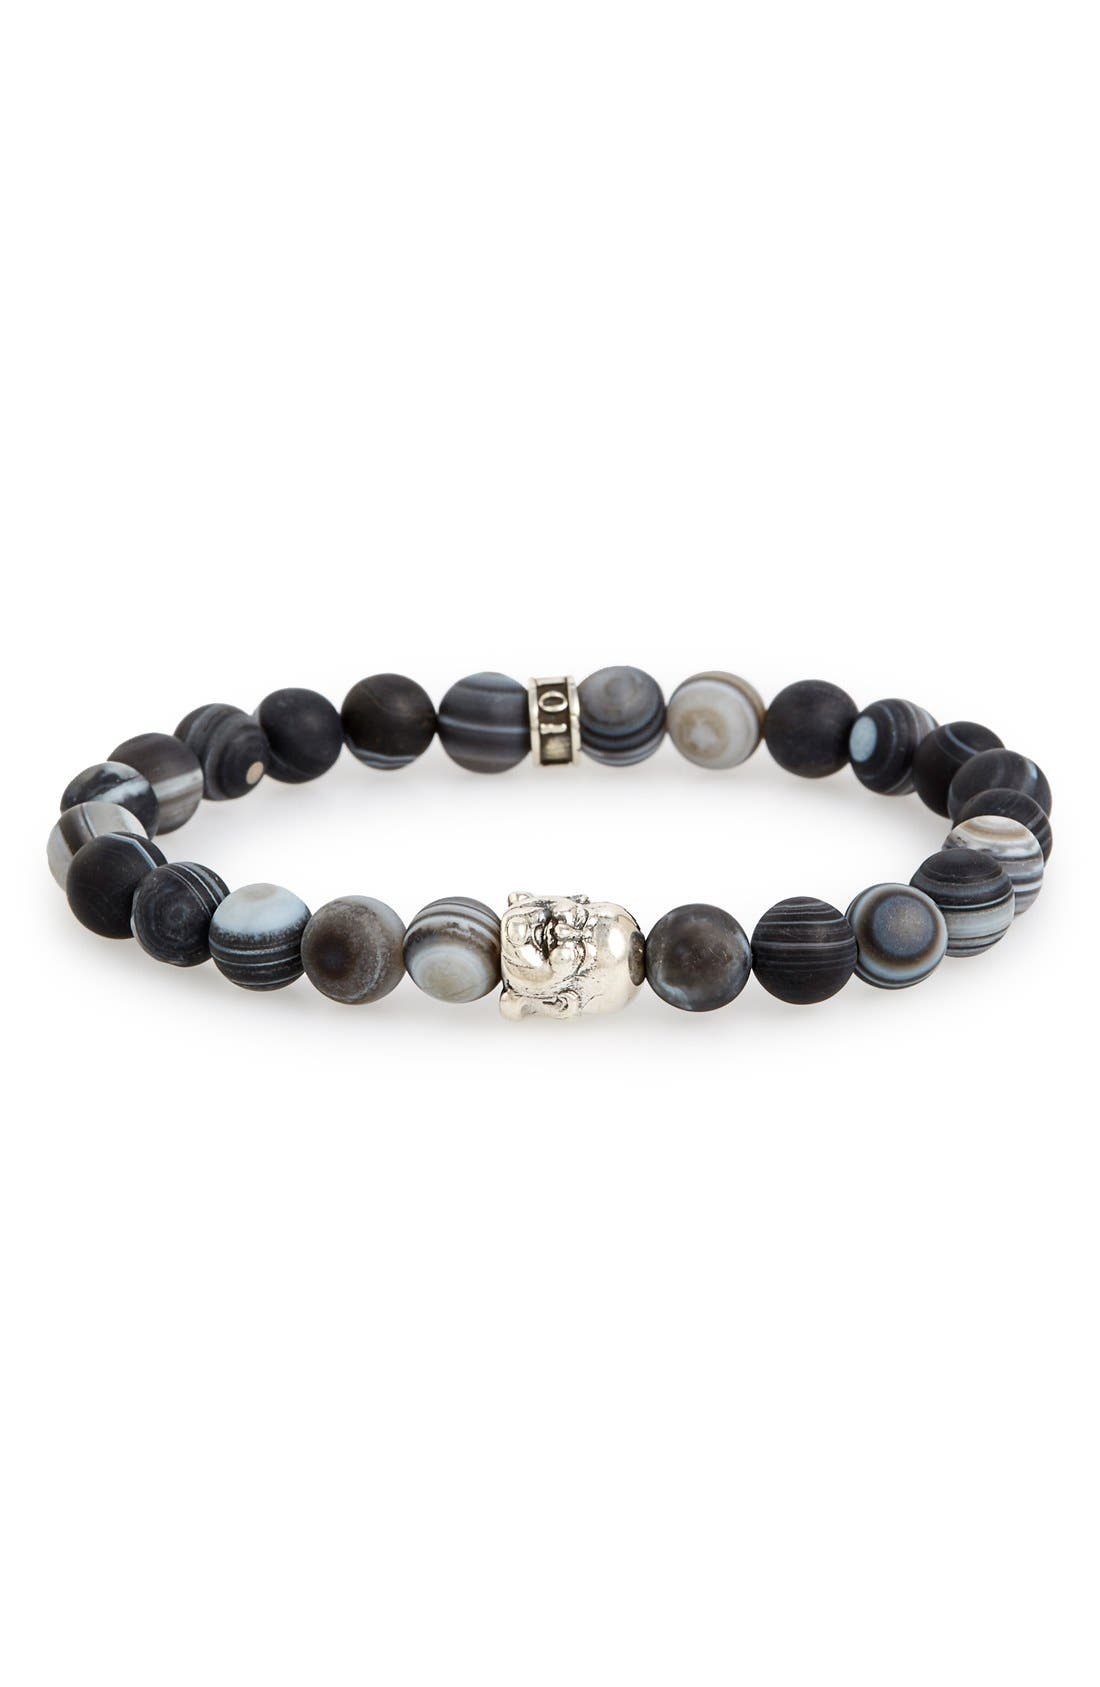 Frosted Agate Buddha Bead Bracelet,                             Main thumbnail 1, color,                             Silver